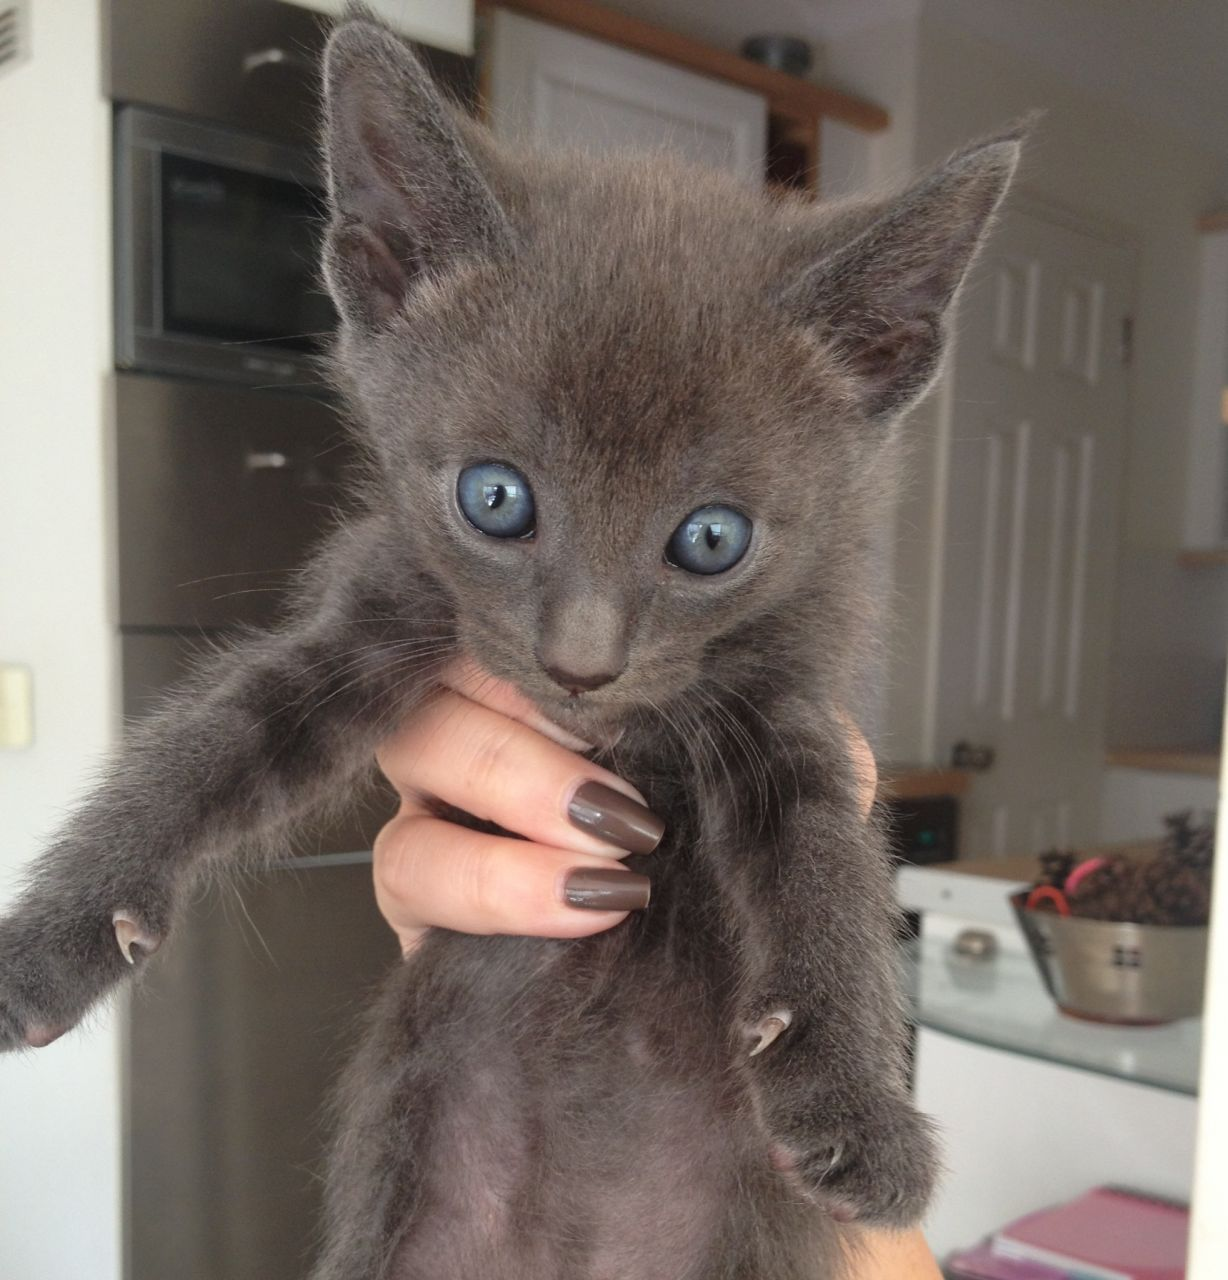 Looking for Siamese kitten names? Choosing a name for a